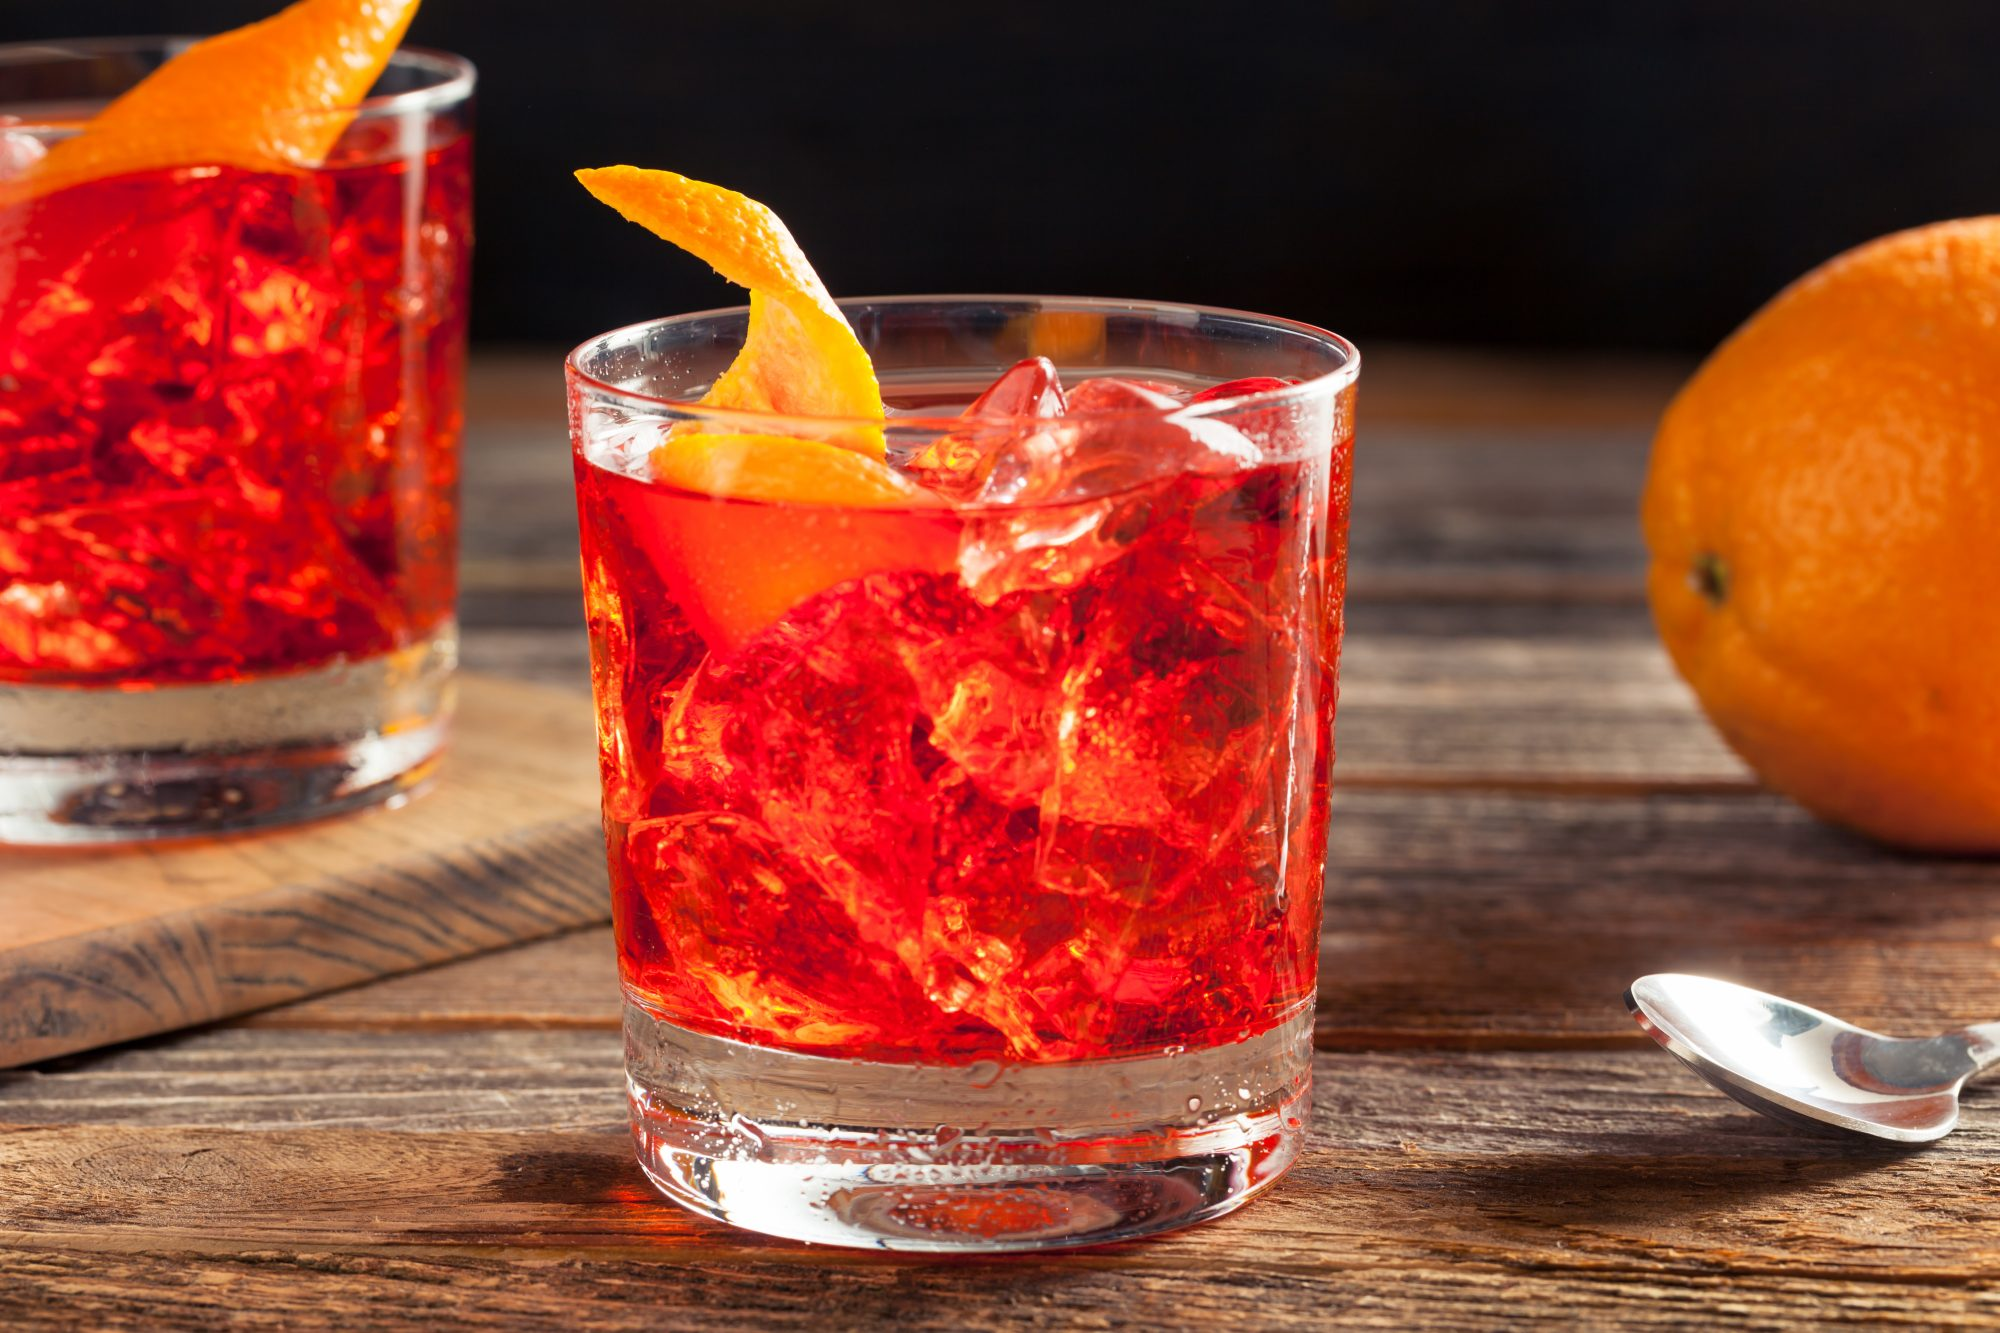 Approaching Its 100th Birthday, The Negroni is Having a Comeback